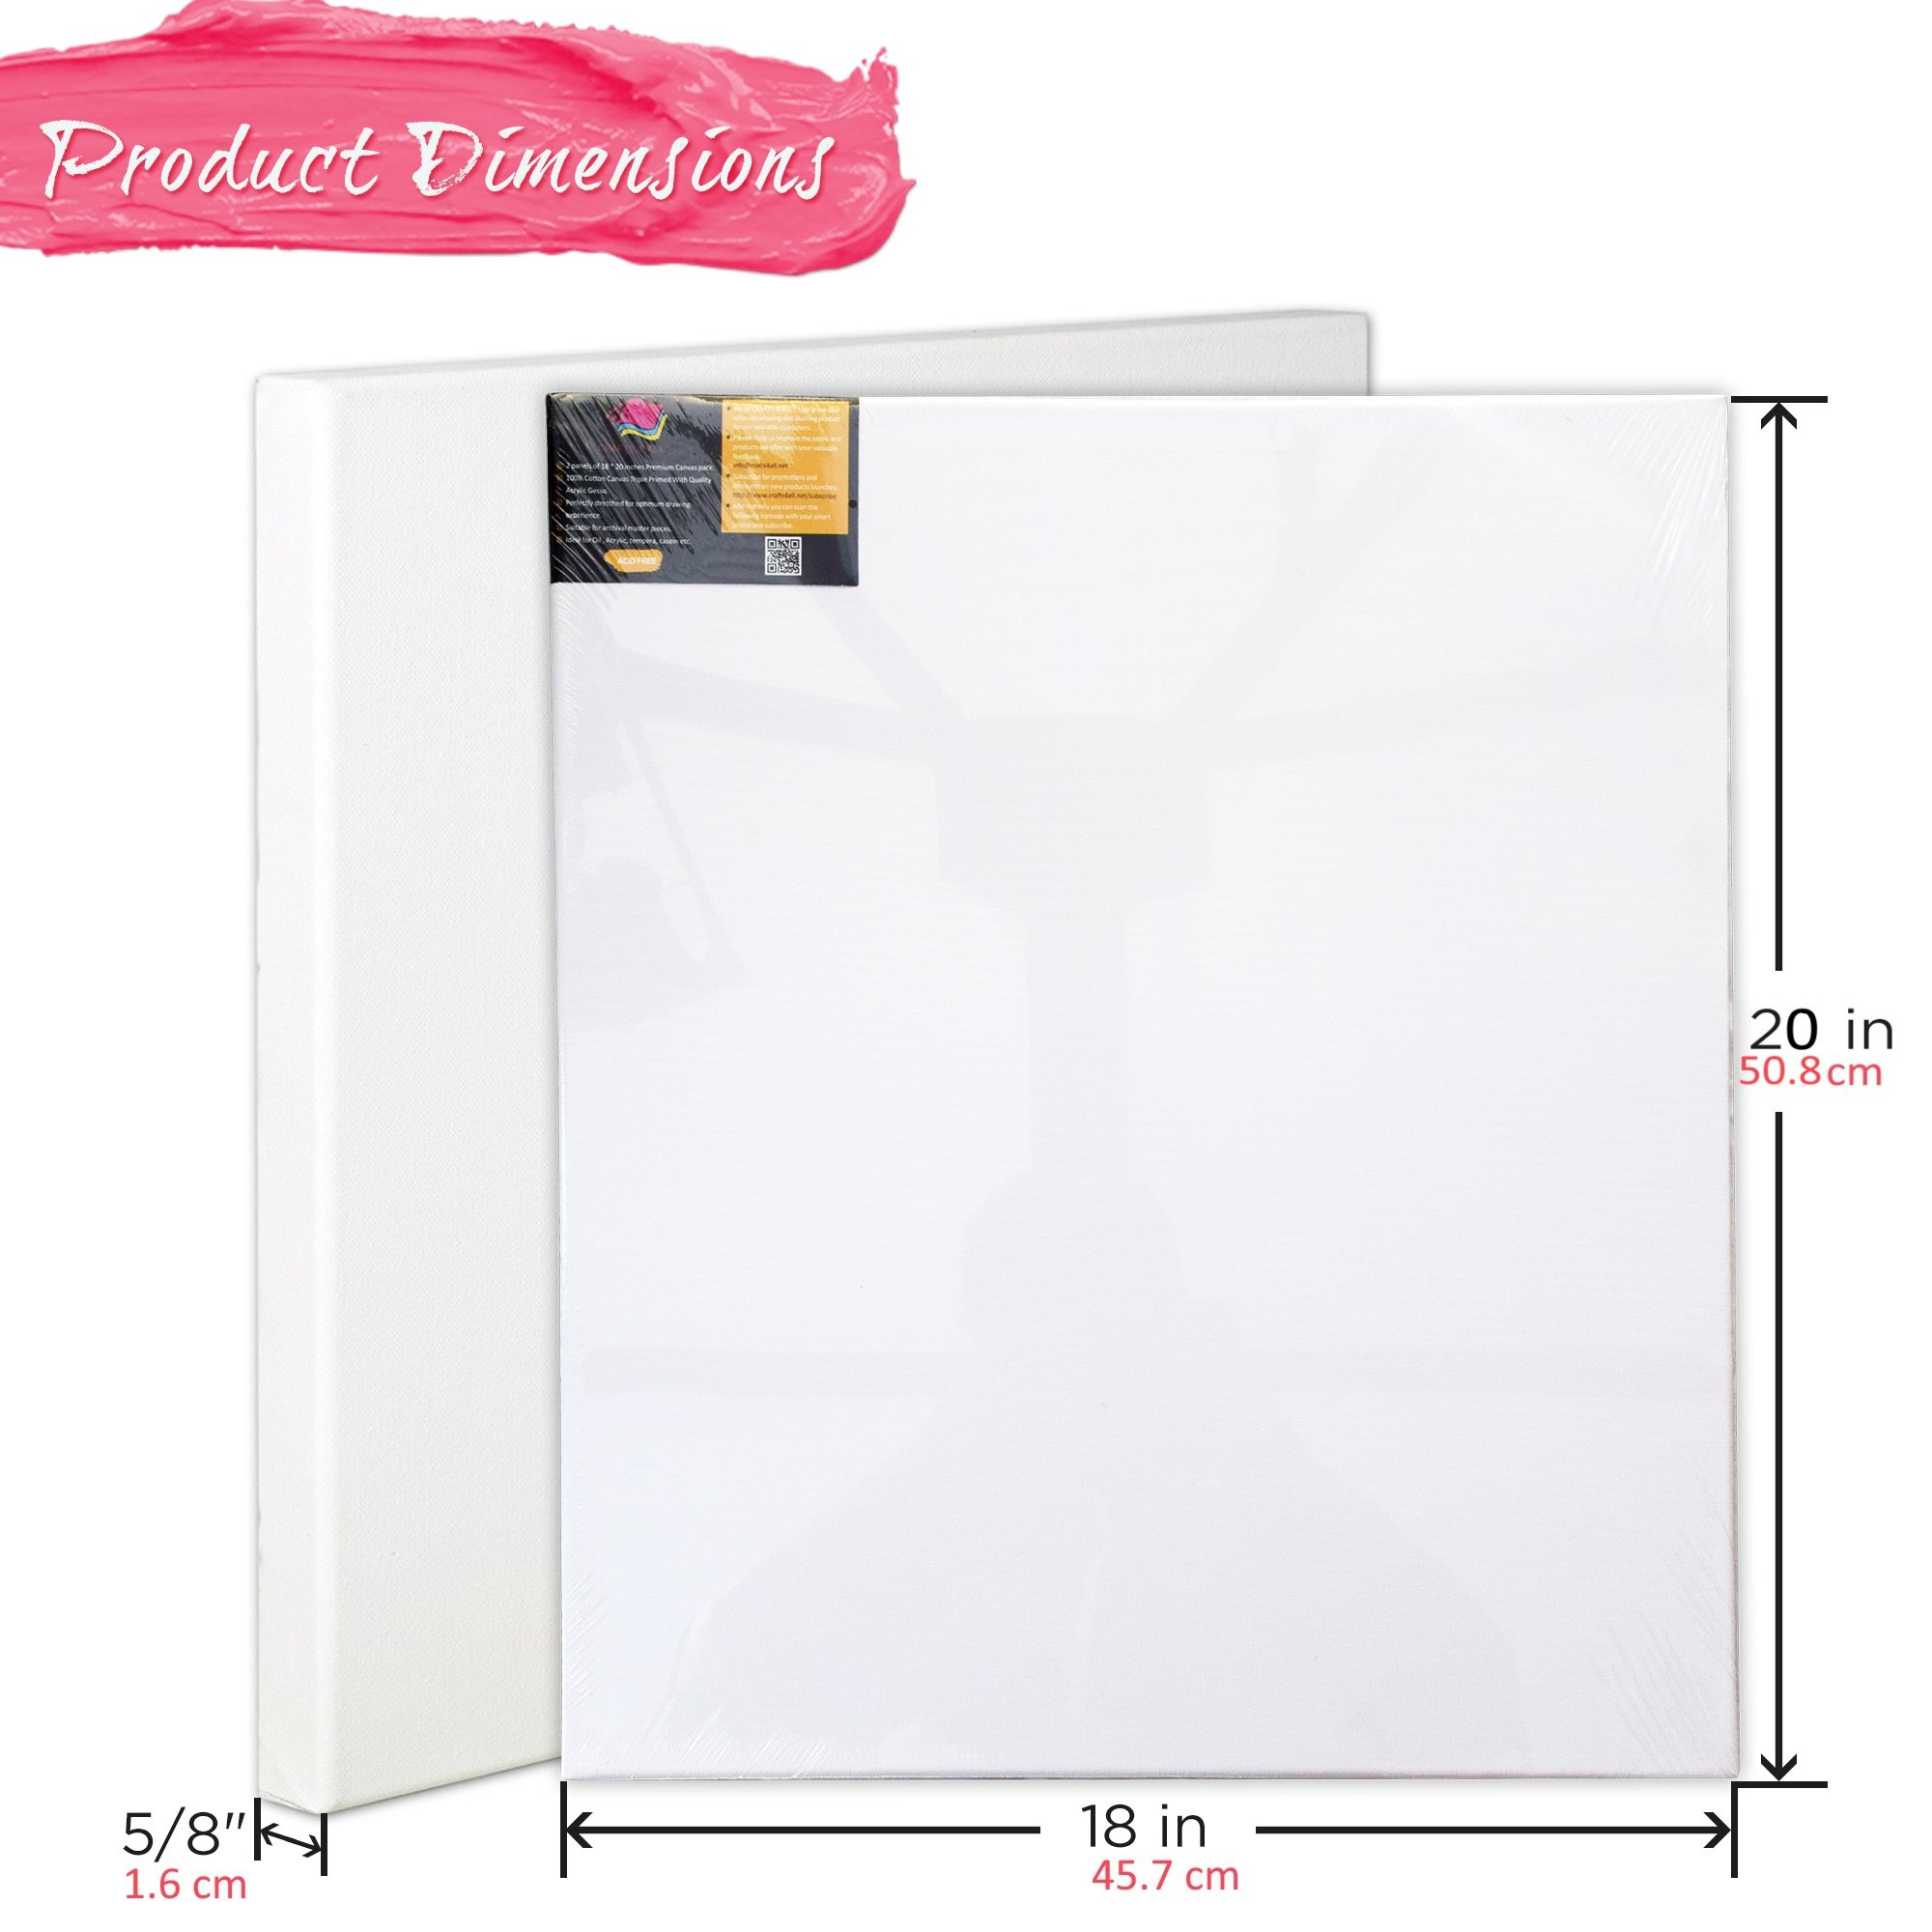 Stretched Canvas Panel Frames EXTRA LARGE 18 x 20 Inches (45.7 cm x 50.8 cm) Professional Quality Acid-Free Artist Canvas Boards for Painting 2 pack Triple Primed with Gesso By Crafts 4 ALL